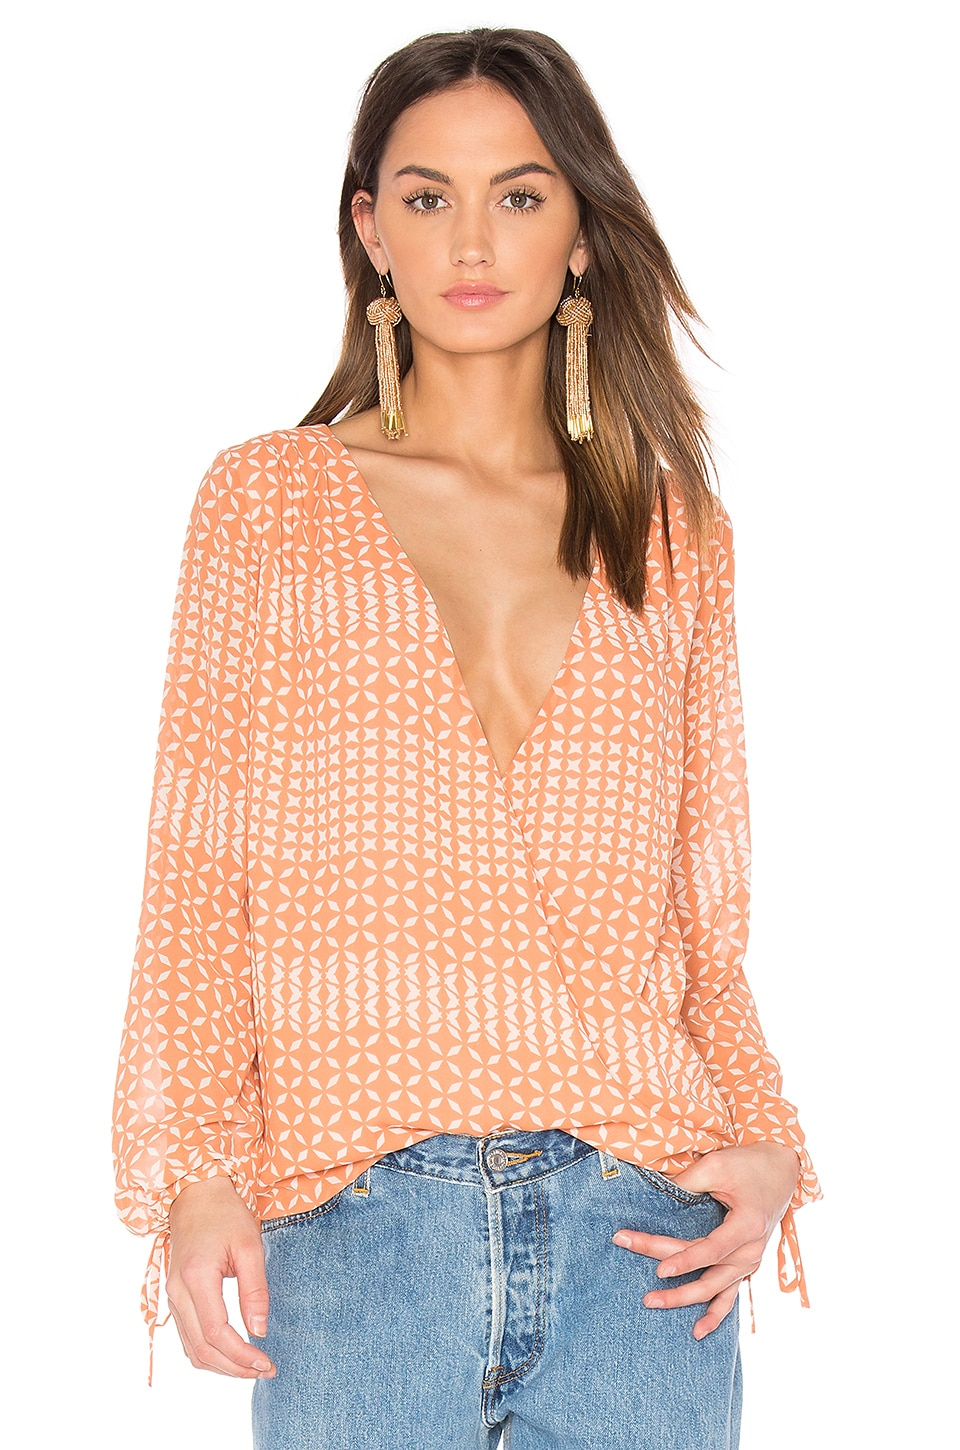 L'Academie The Long Sleeve Wrap Blouse in Kaleidoscope